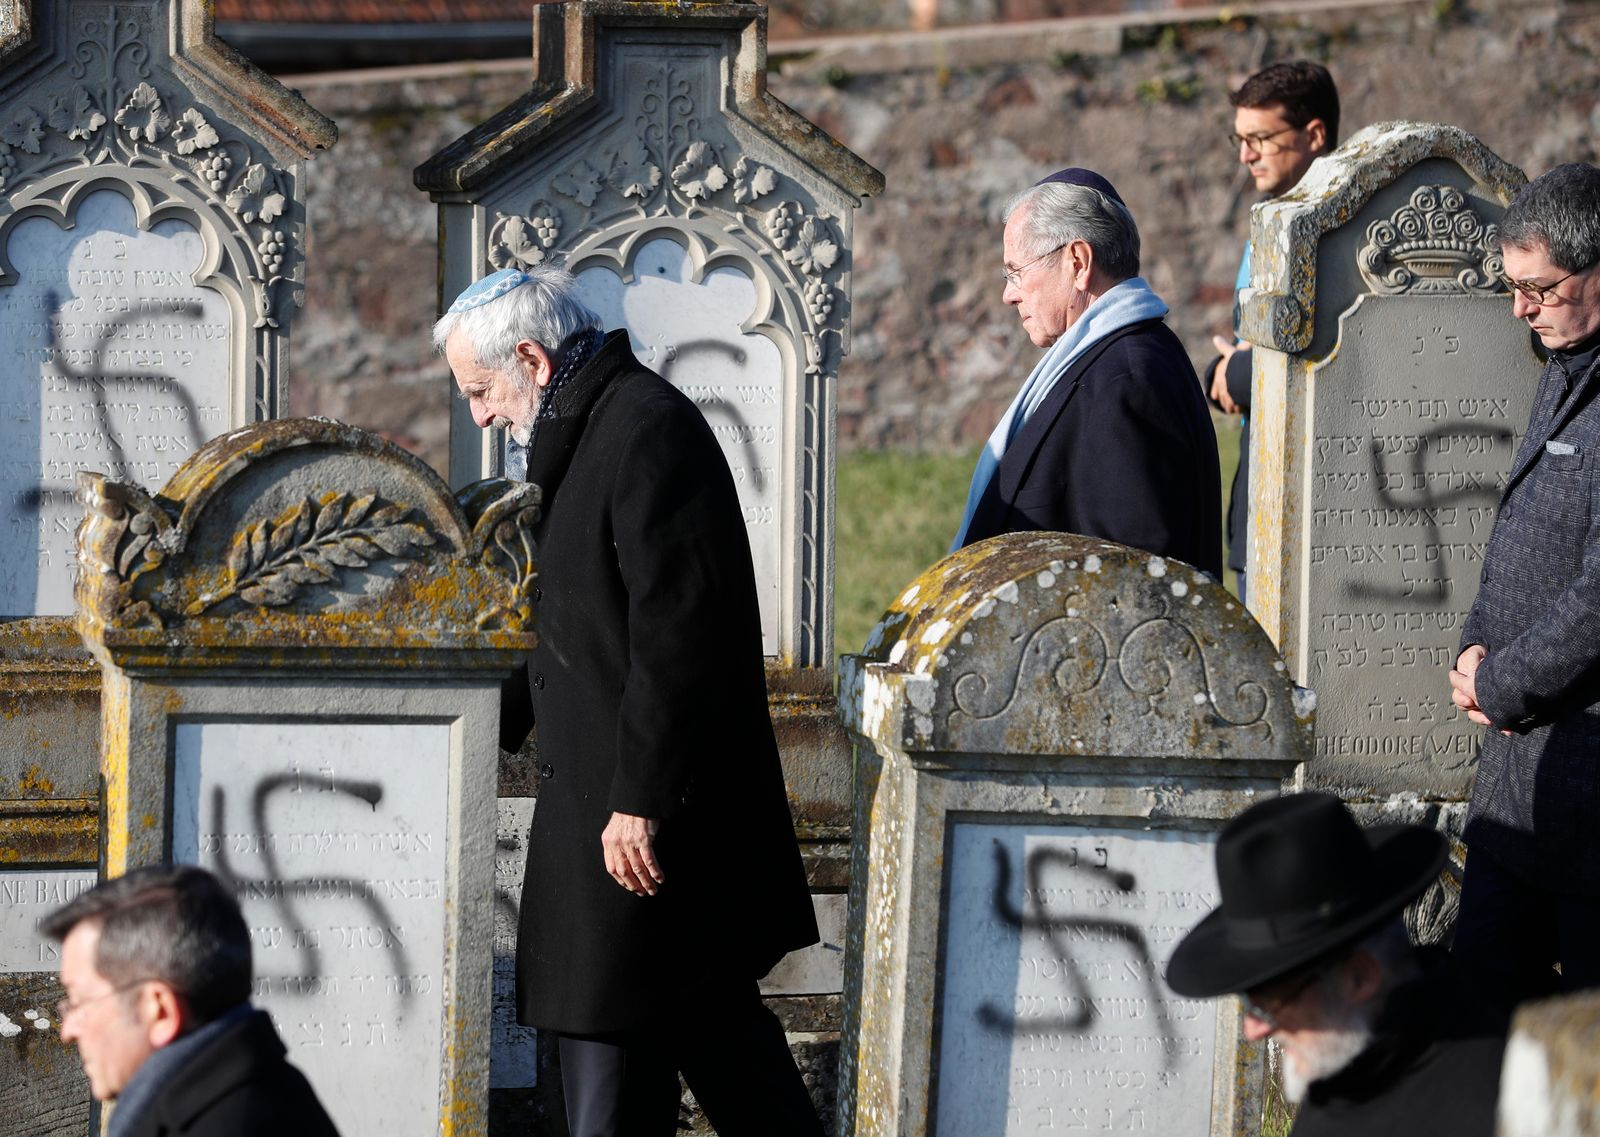 Members of the Jewish community walk amid vandalized tombs in the Jewish cemetery of Westhoffen, west of the city of Strasbourg, eastern France, Wednesday, Dec. 4, 2019.{ } (AP Photo/Jean-Francois Badias)